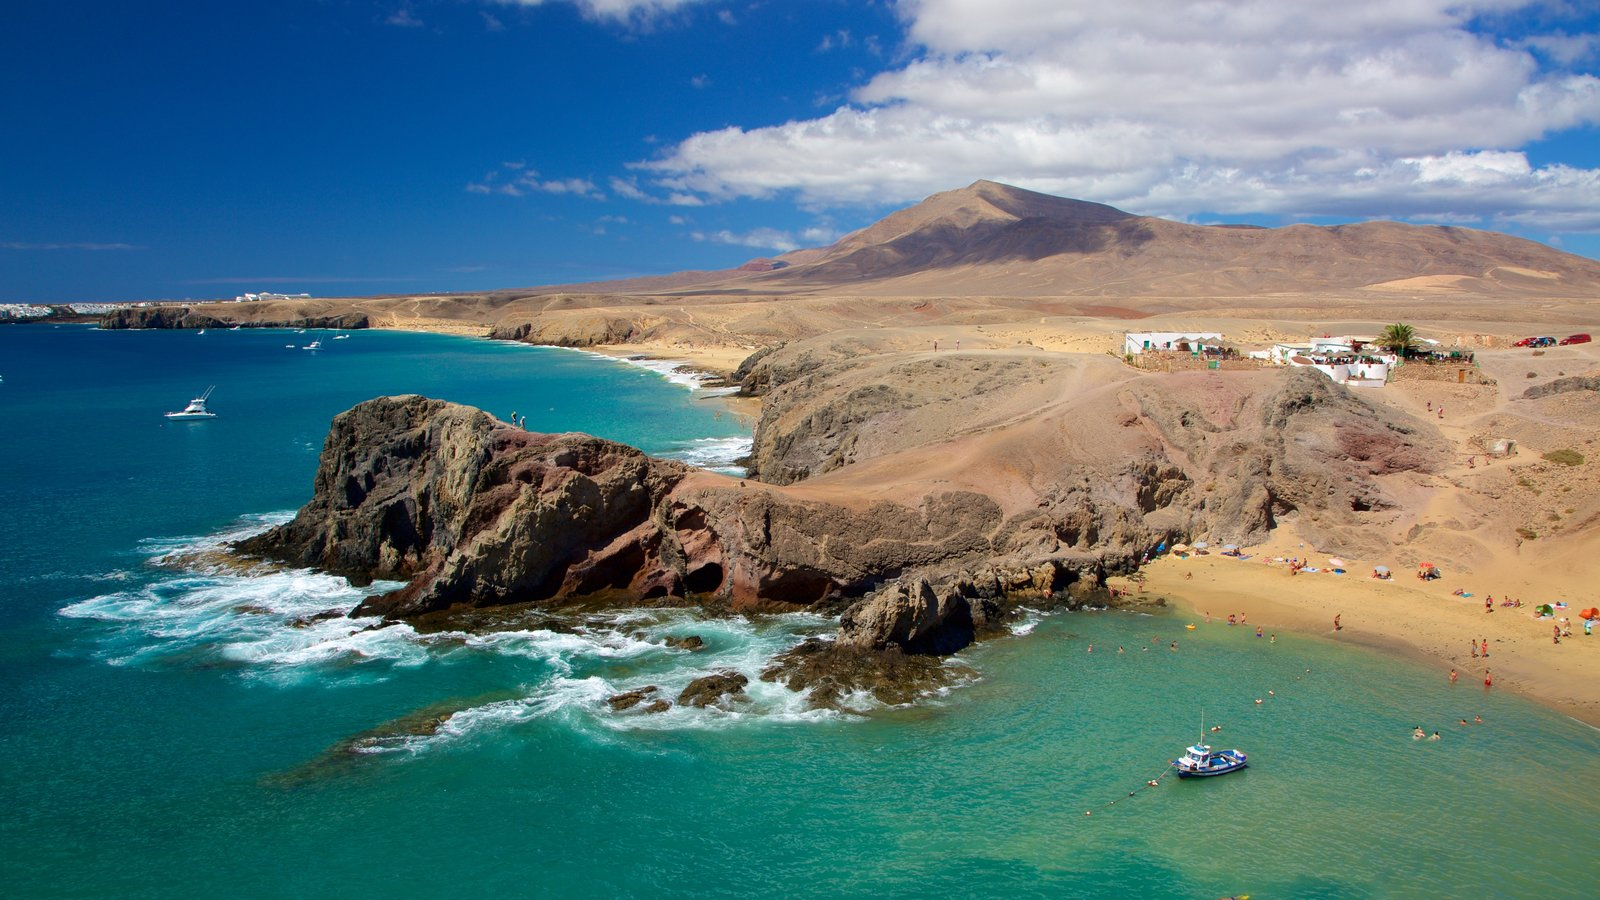 Papagayo Beach which includes general coastal views, a sandy beach and rocky coastline